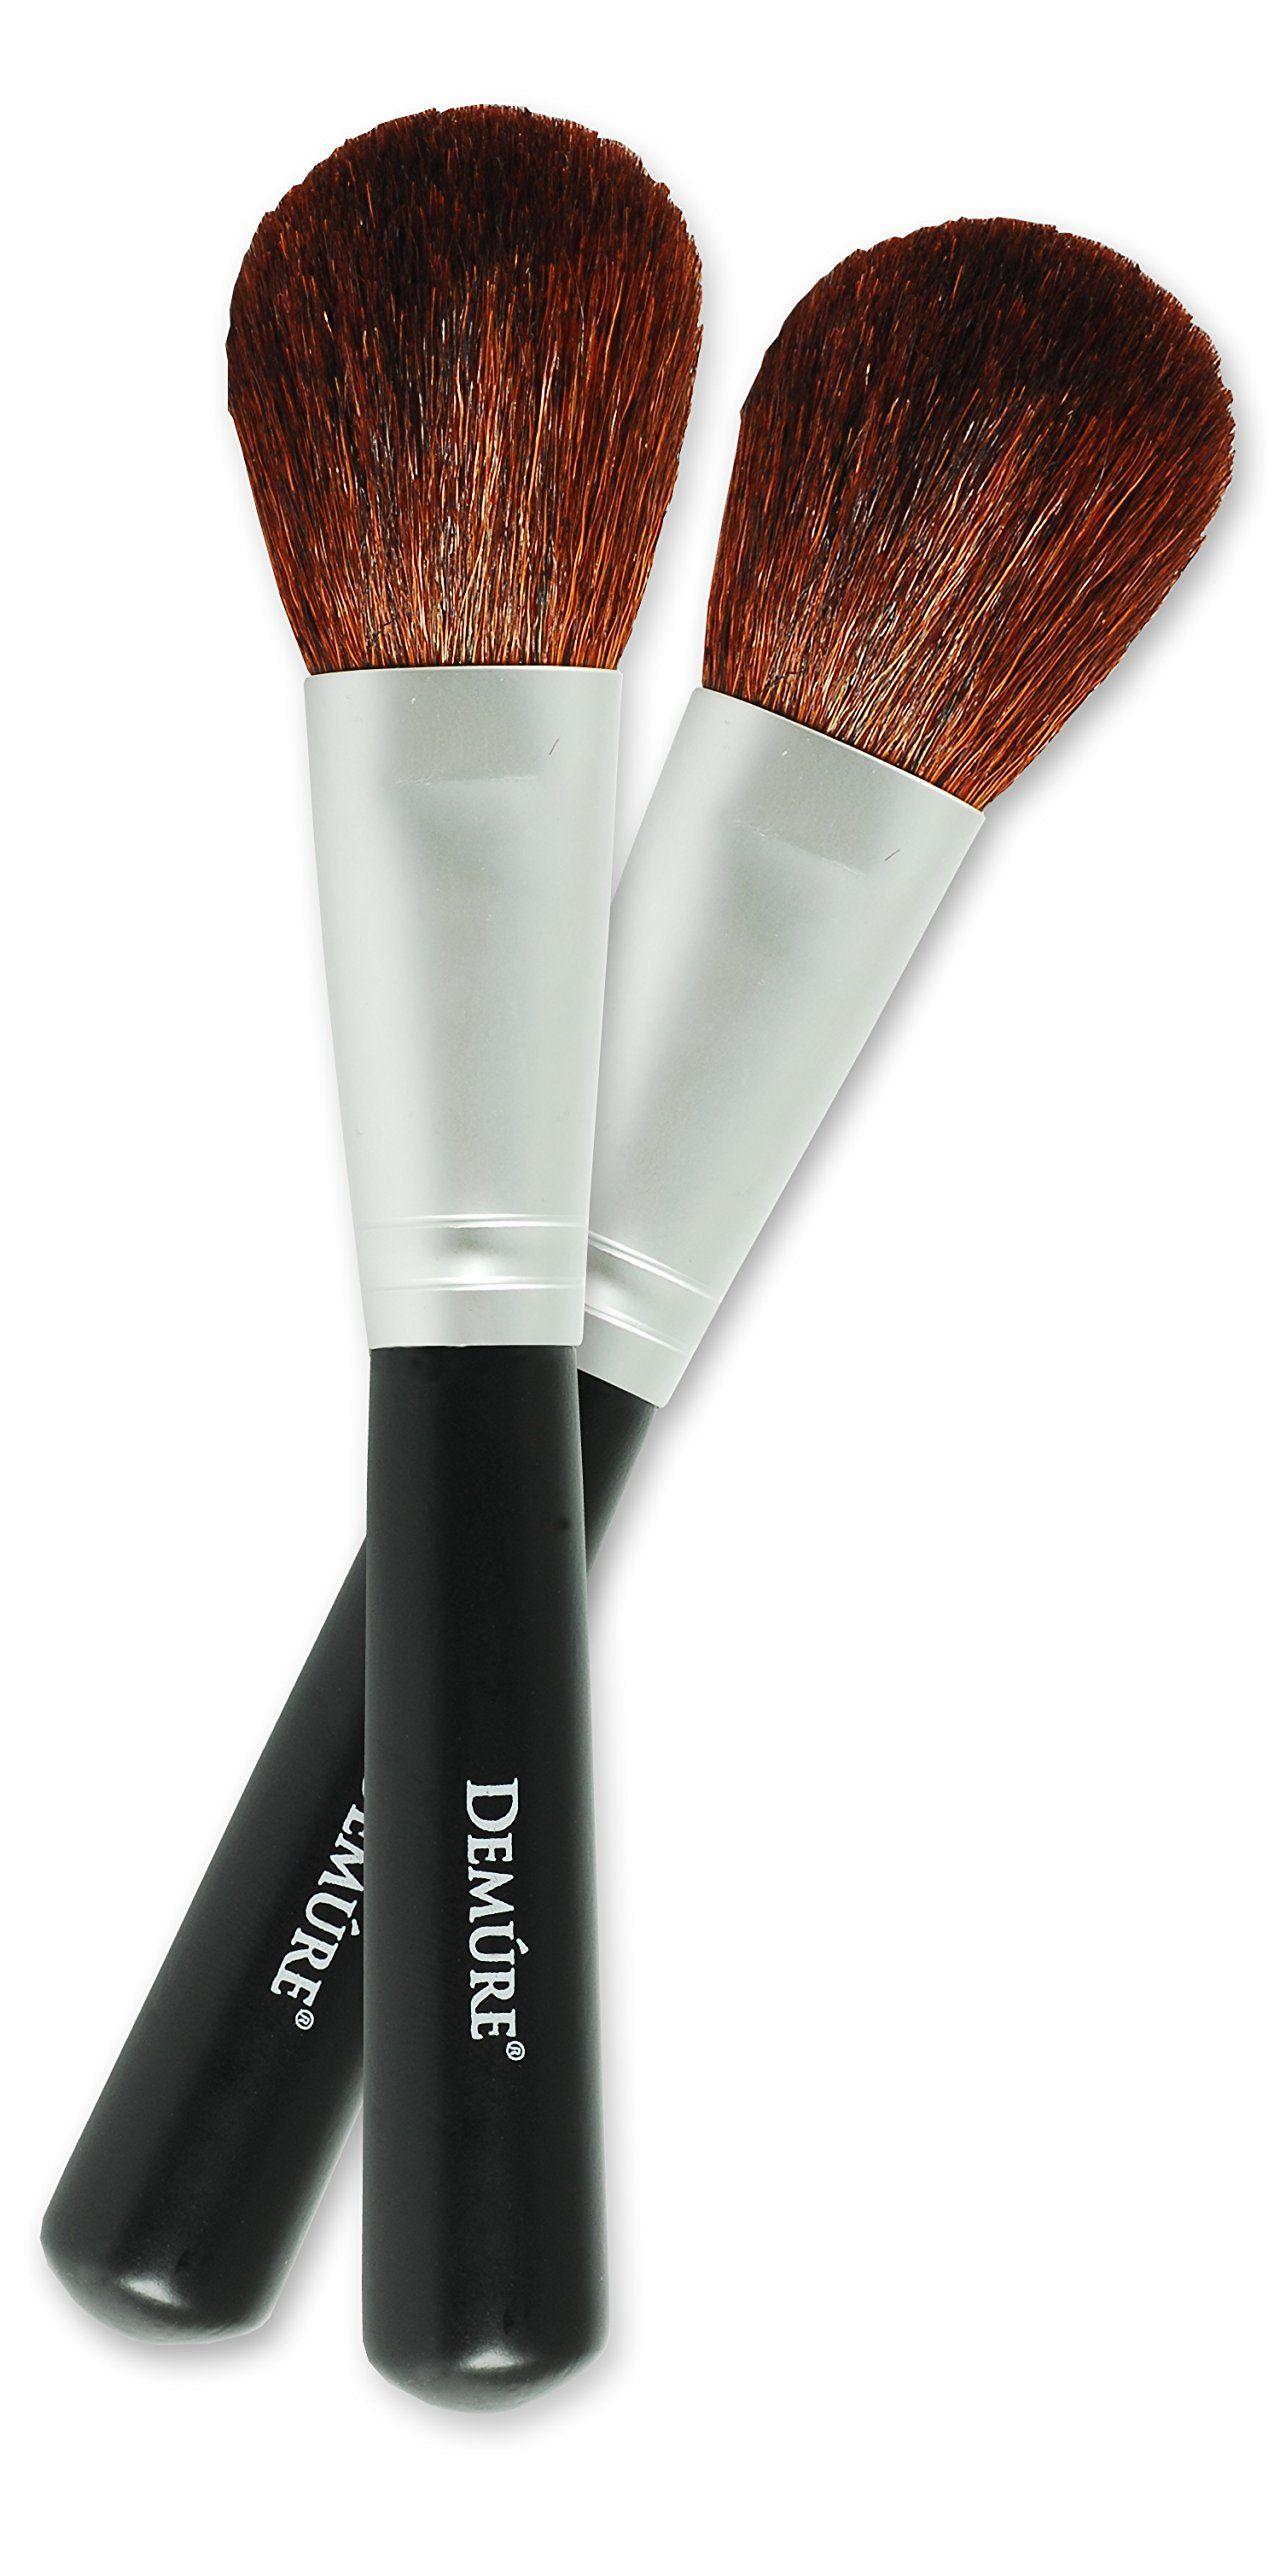 Natural Goat's Hair Blush Brush by Demure Cosmetics, Two